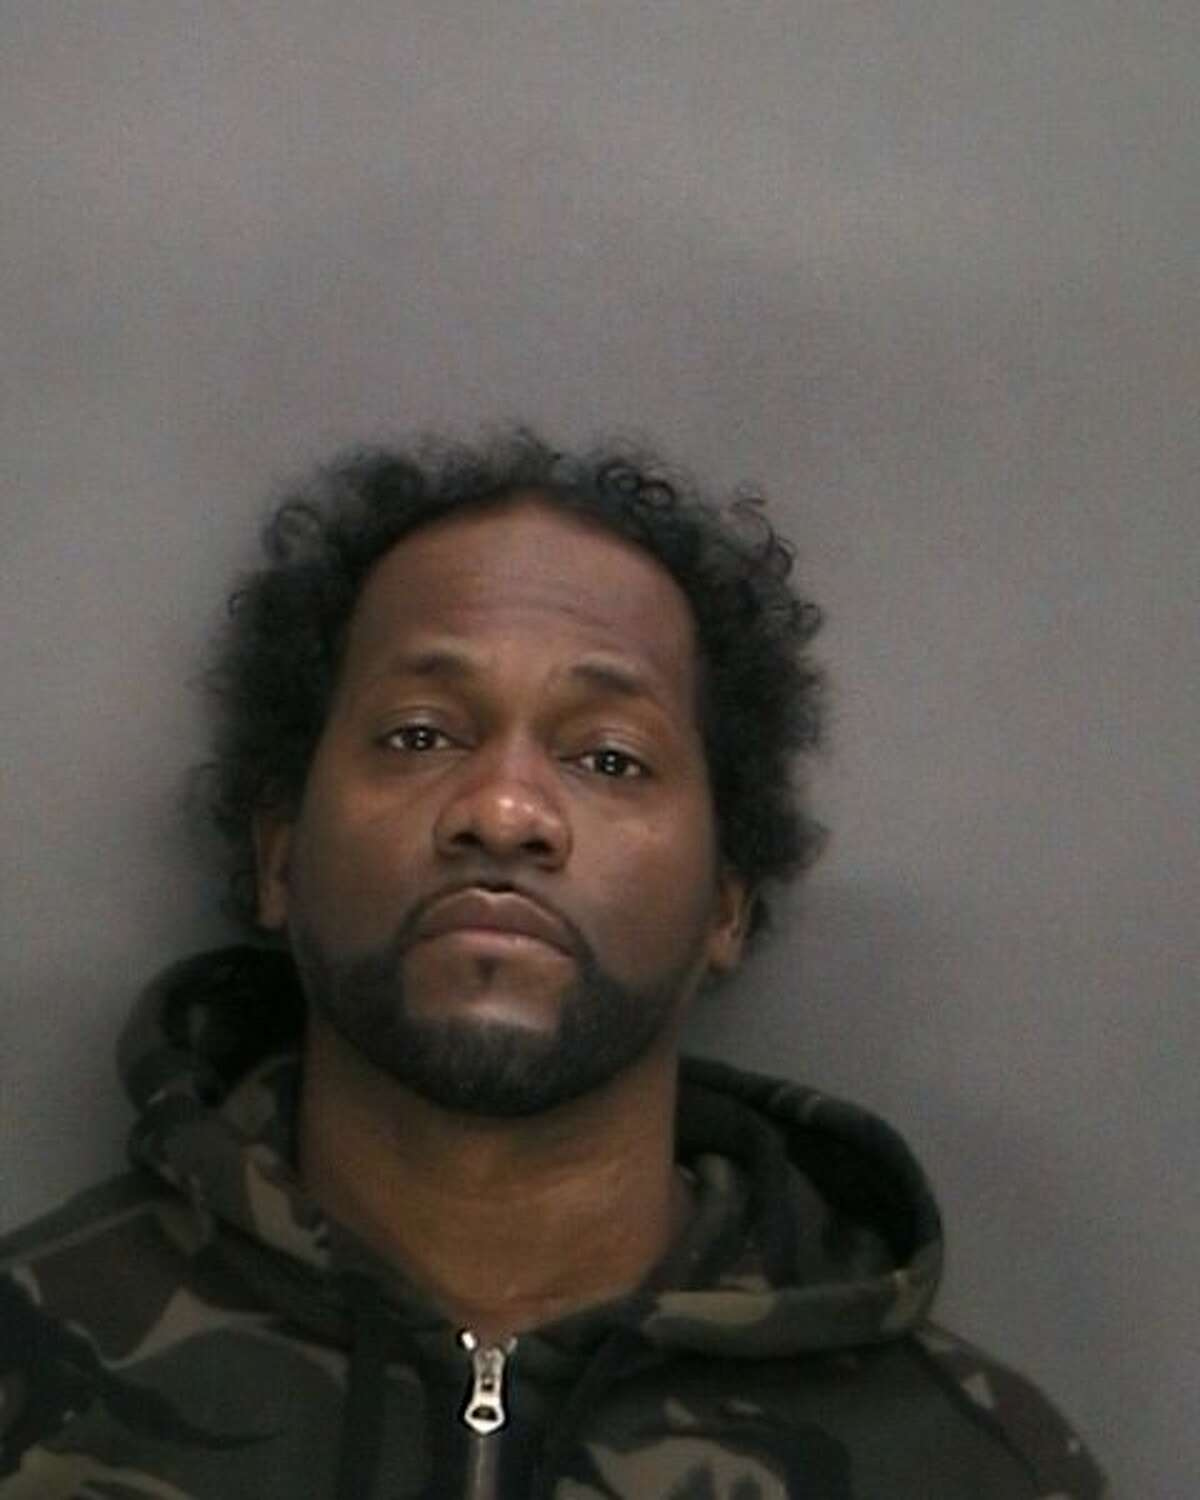 Kevin Cox who faces a charge of second-degree murder for allegedly killing 6-year-old Davonte Paul.